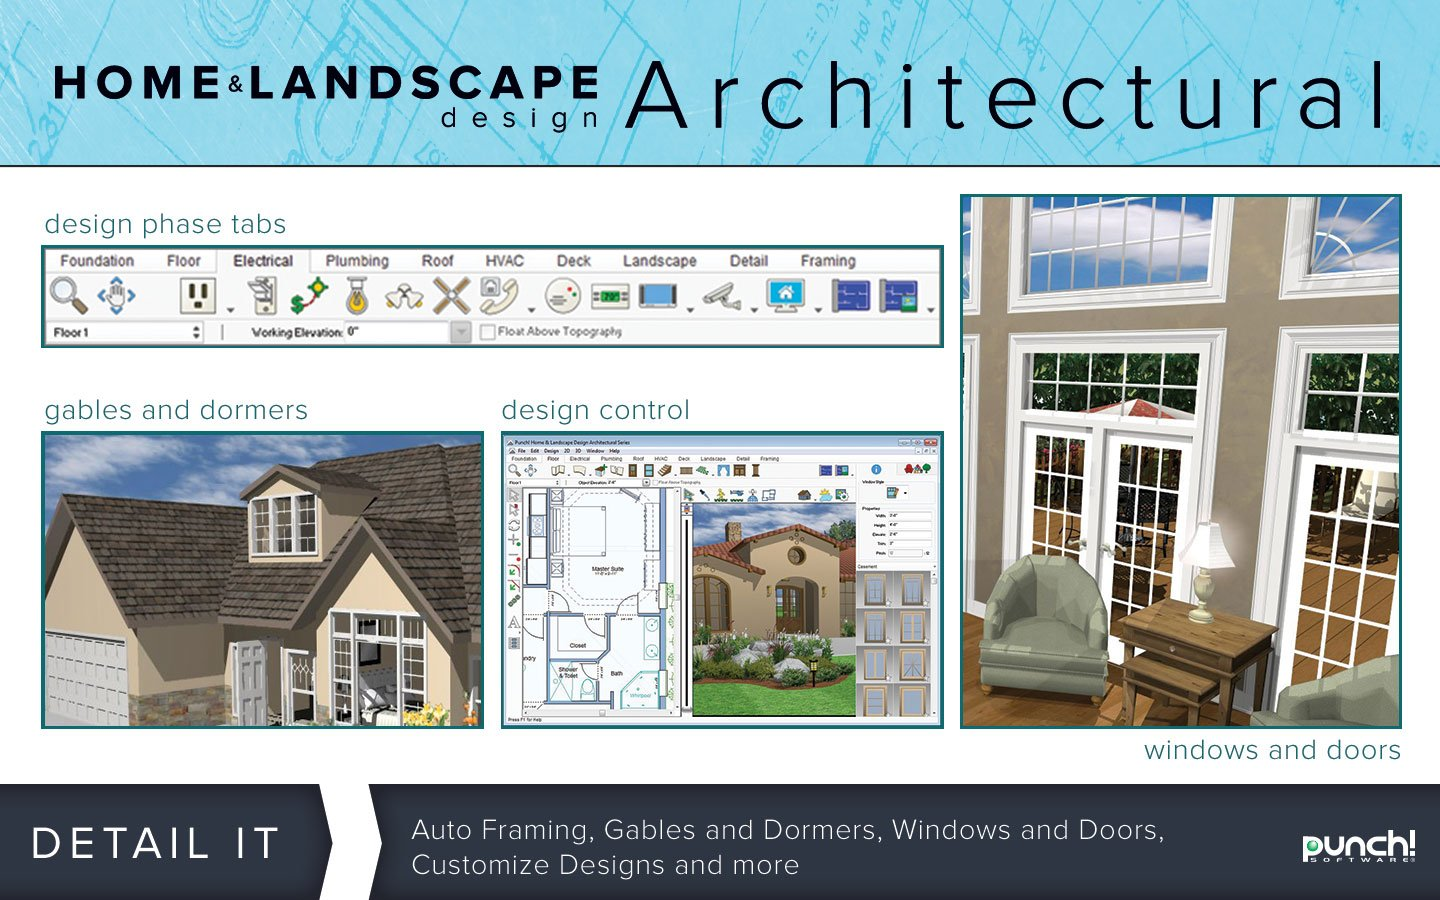 Punch! Home & Landscape Design Architectural Series V18